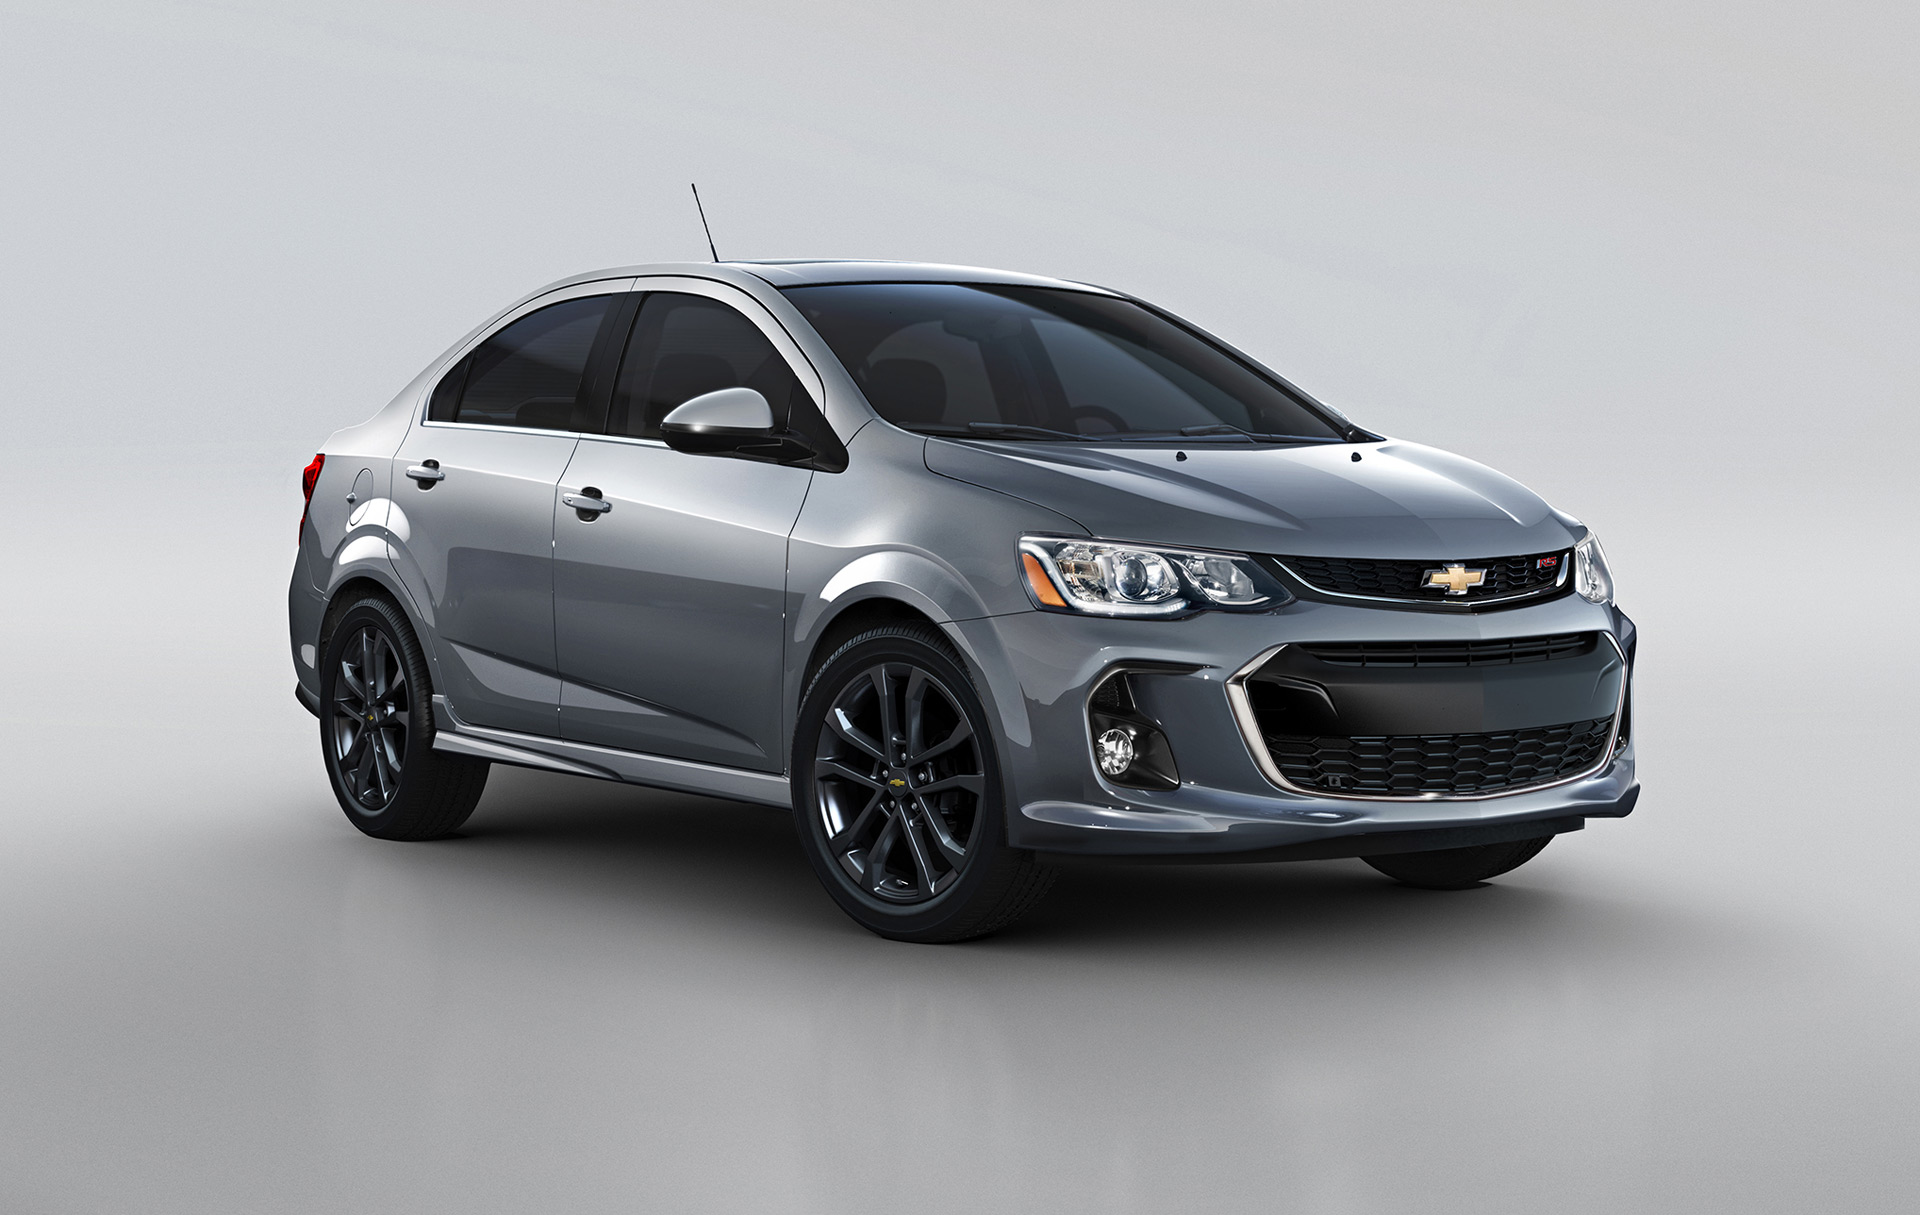 2017 chevrolet sonic chevy gas mileage the car connection. Black Bedroom Furniture Sets. Home Design Ideas